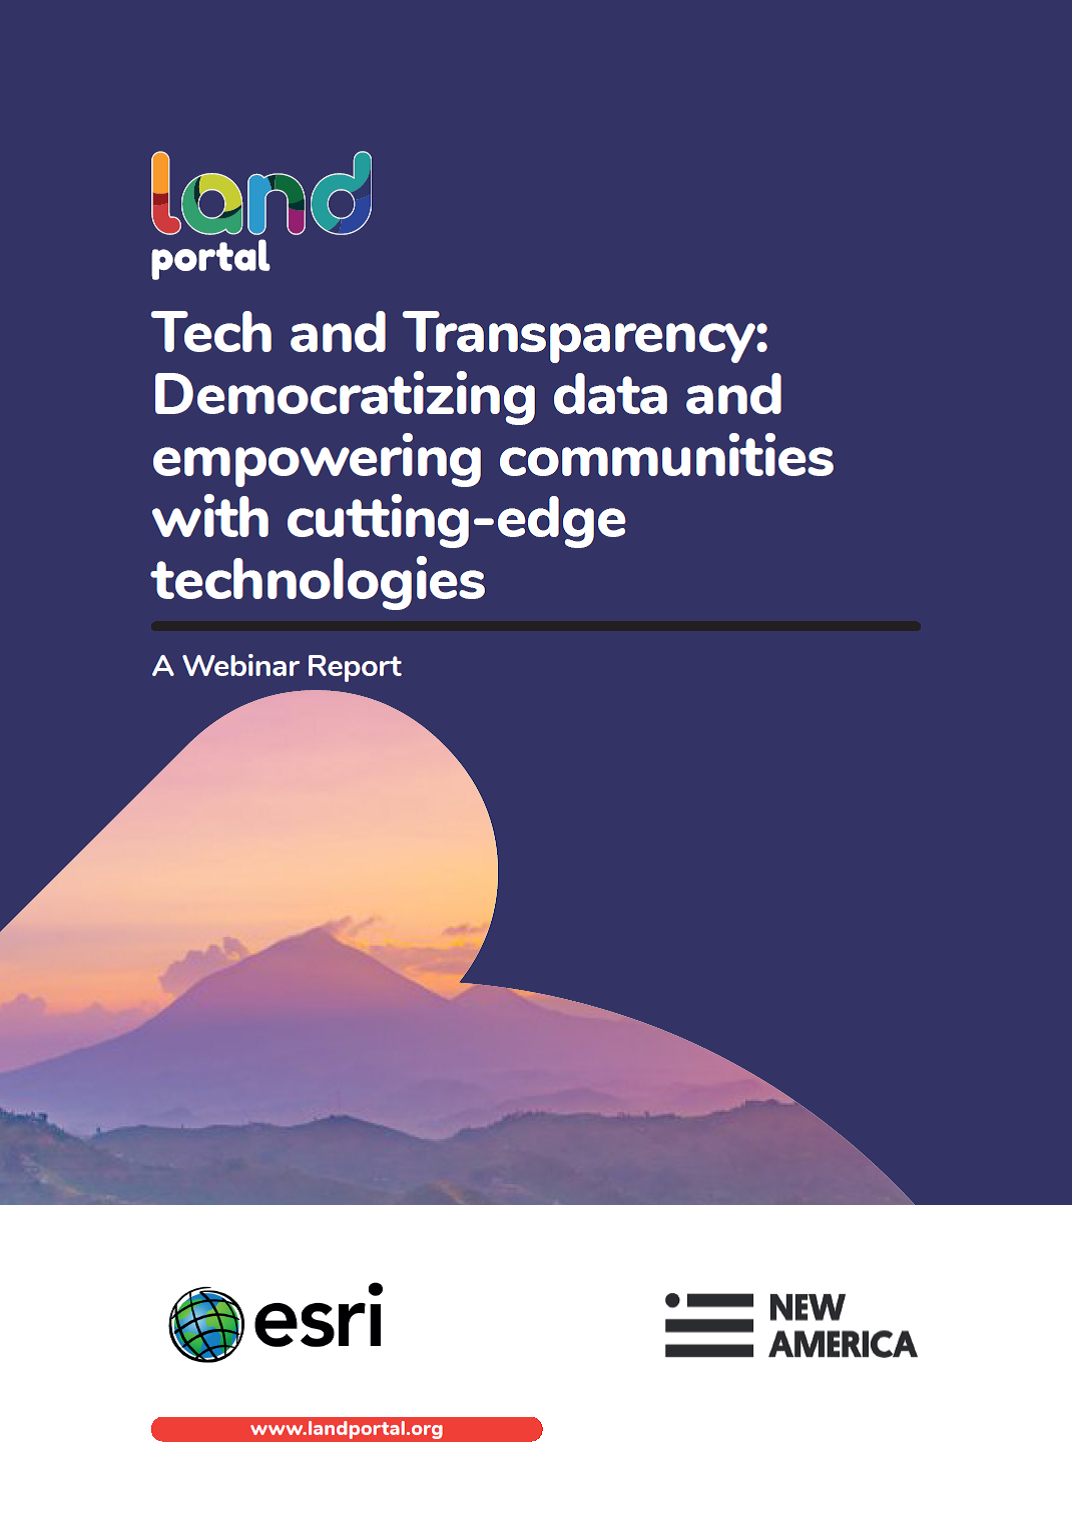 Tech and Transparency: democratising data and empowering communities with cutting-edge technologies